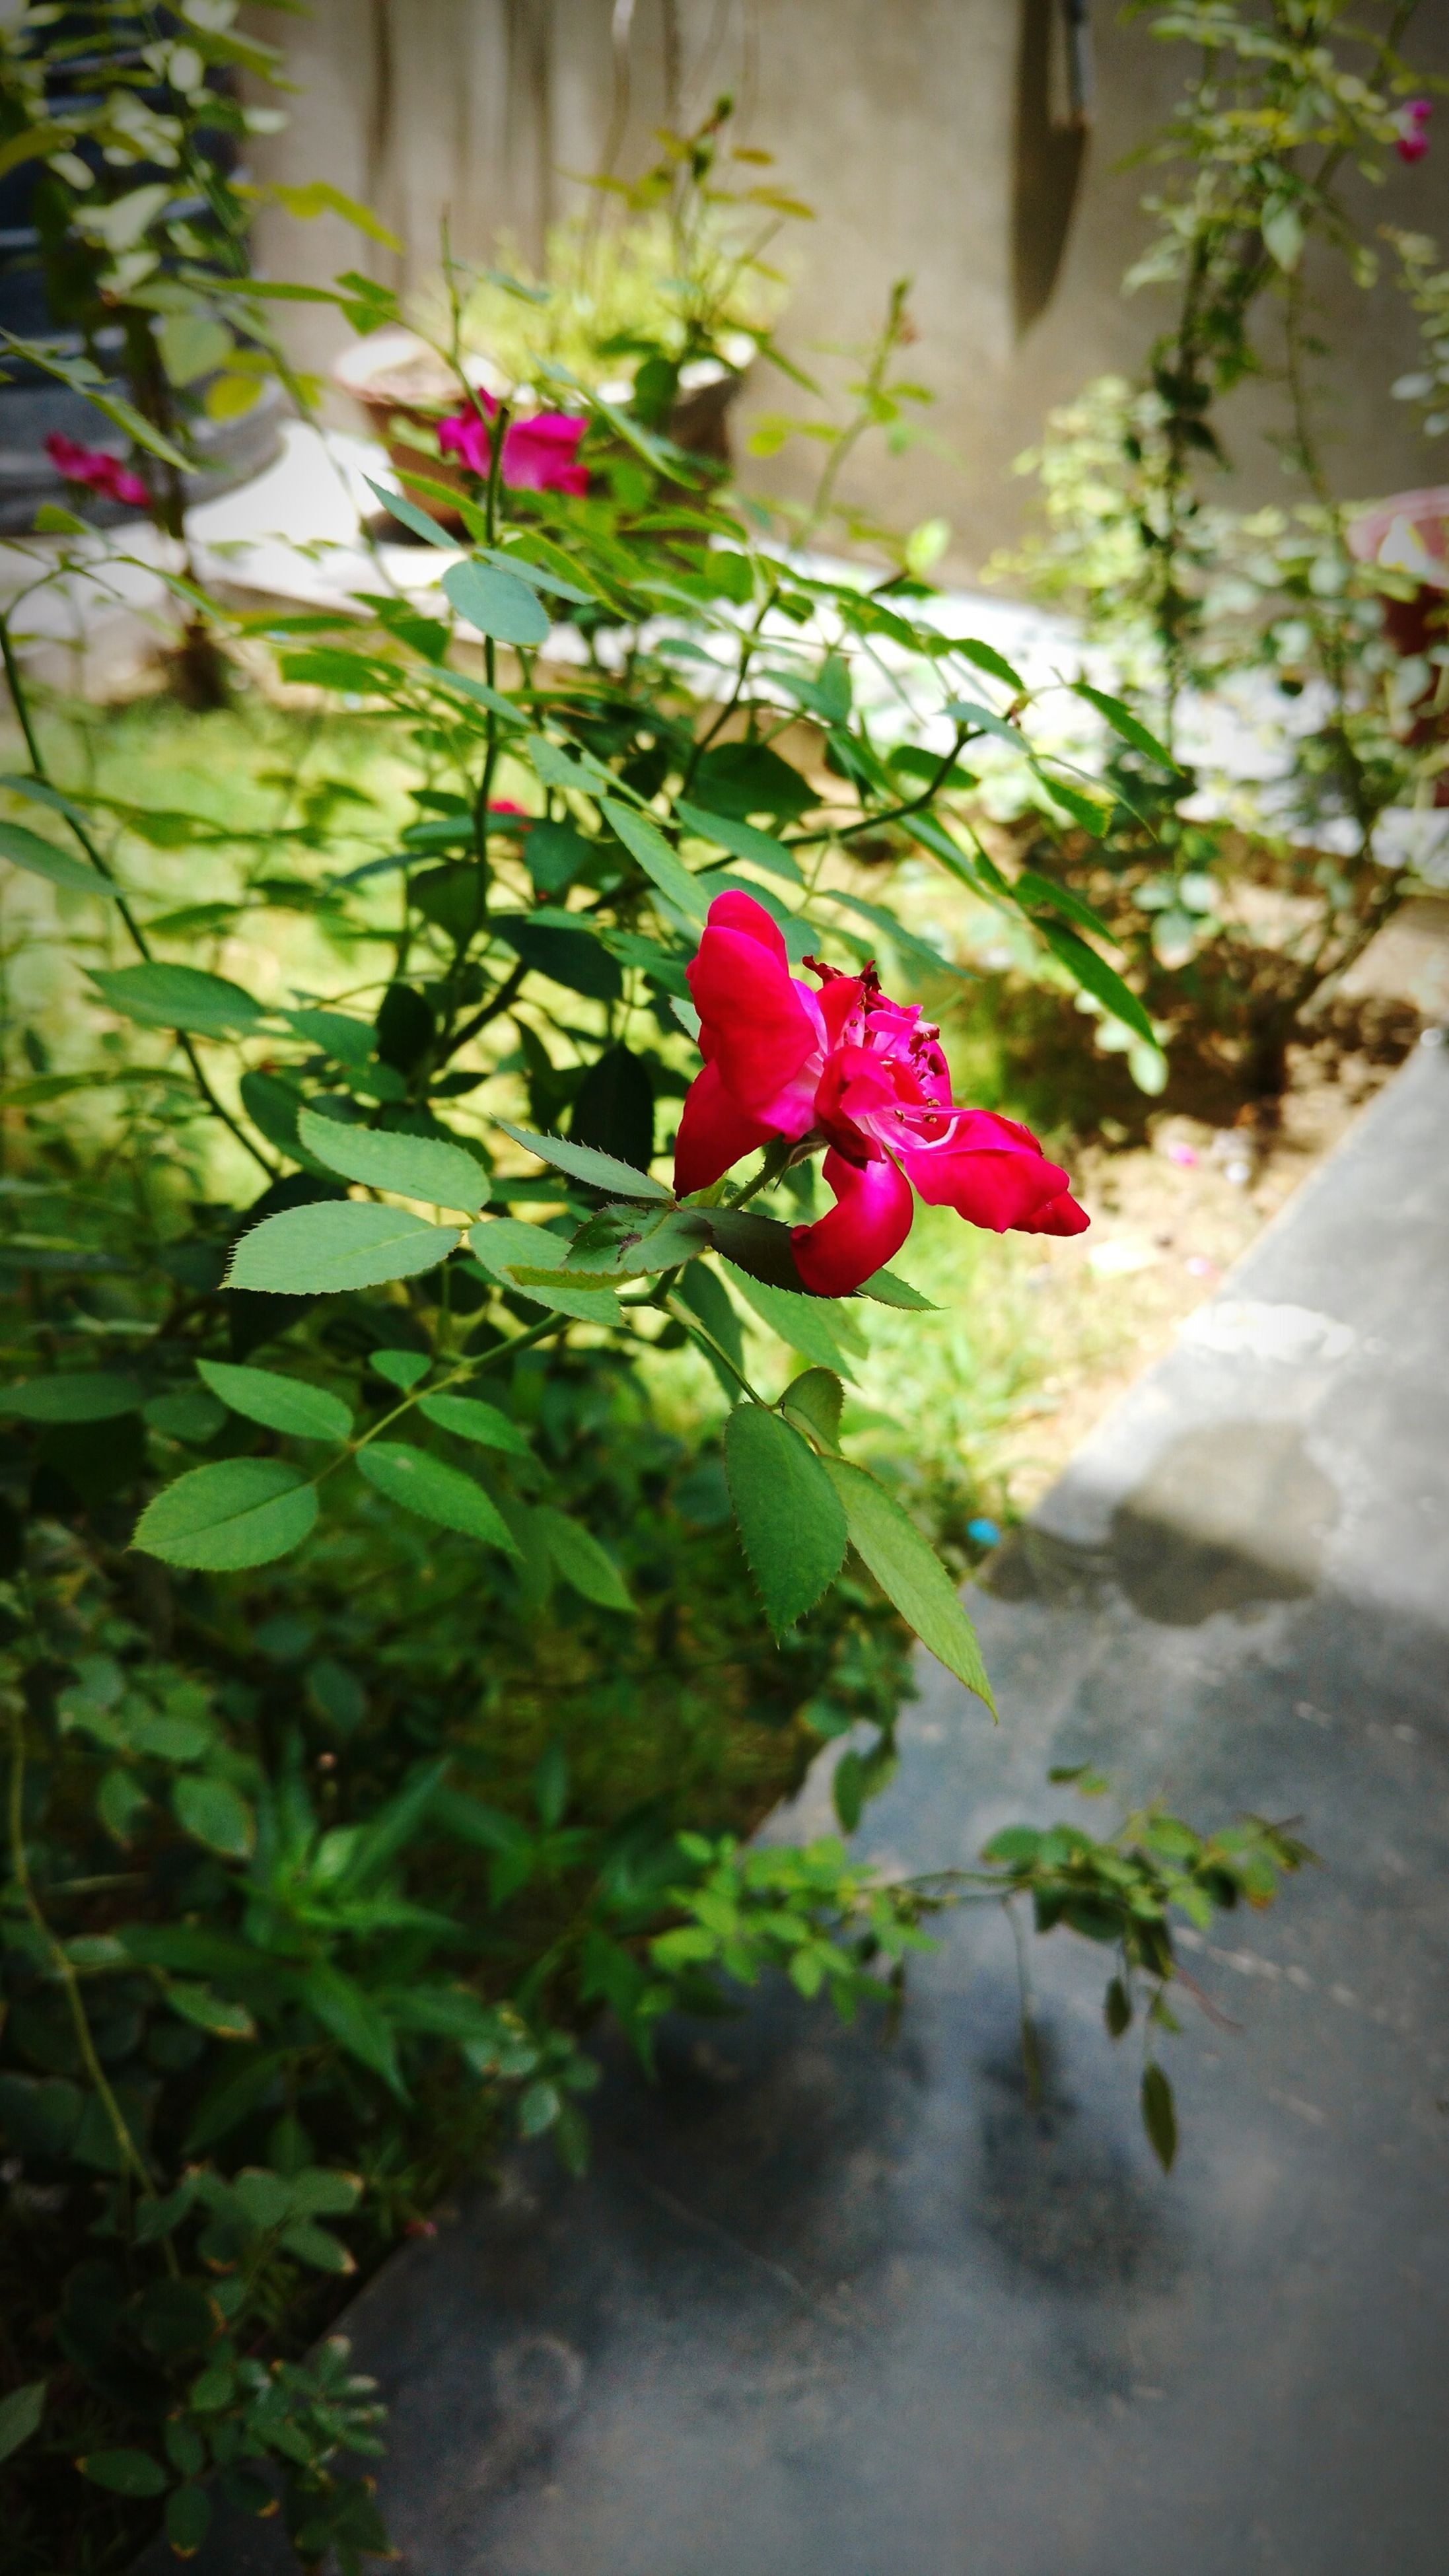 flower, freshness, petal, fragility, growth, red, plant, leaf, pink color, flower head, beauty in nature, nature, blooming, close-up, rose - flower, focus on foreground, stem, in bloom, bud, blossom, day, no people, outdoors, selective focus, green color, botany, growing